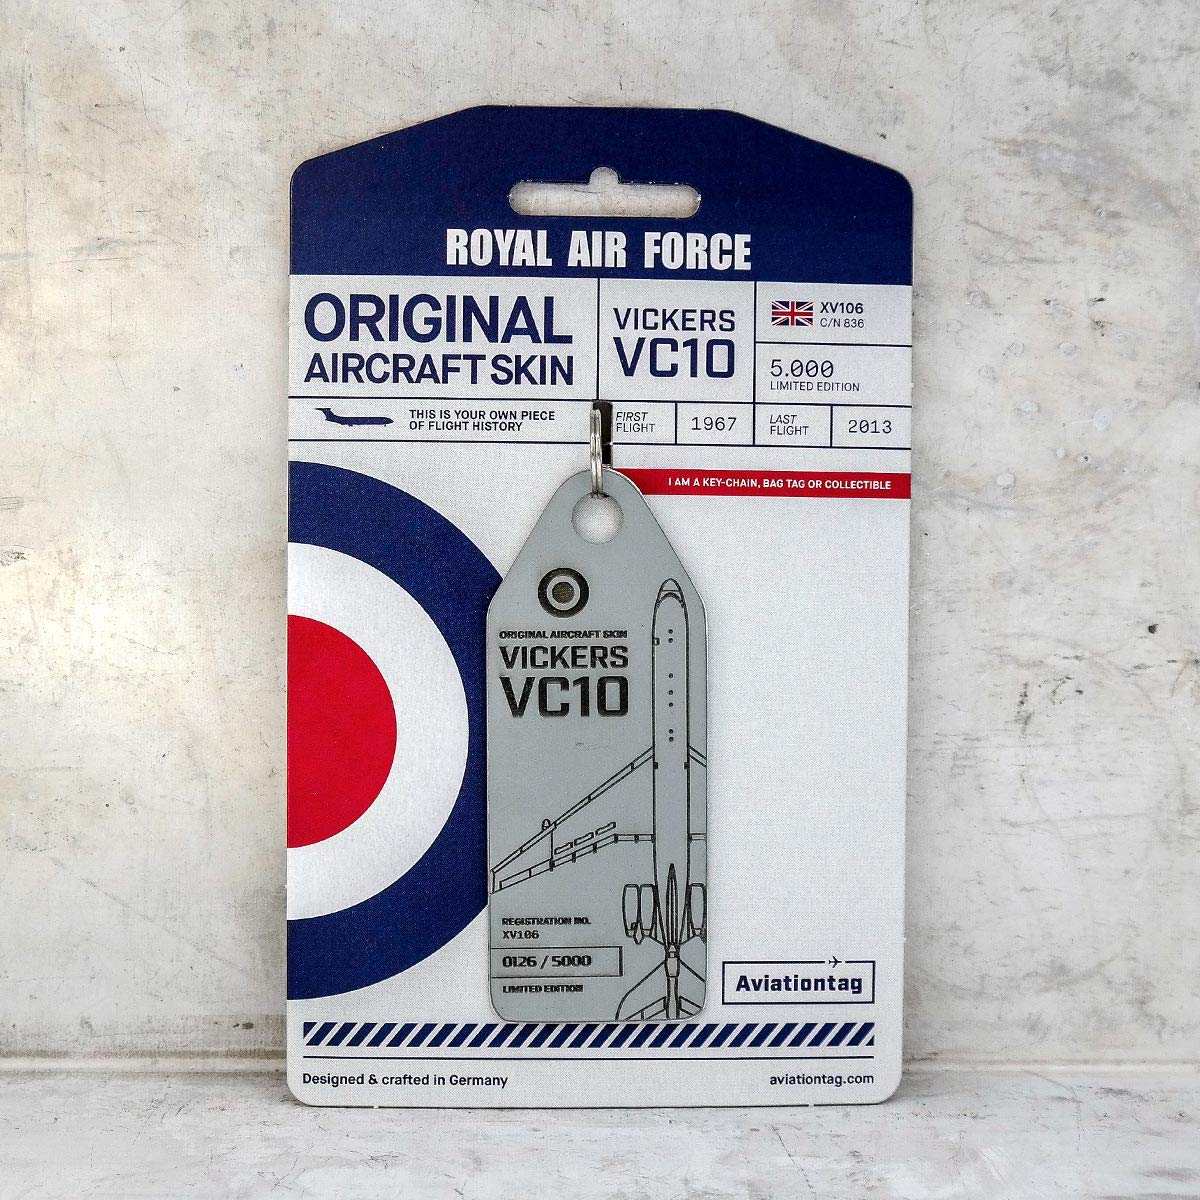 AVT022 AviationTag Vickers VC10 (Royal Air Force) Grey Original Aircraft Skin Keychain/Luggage Tag/Etc with Lost & Found Feature